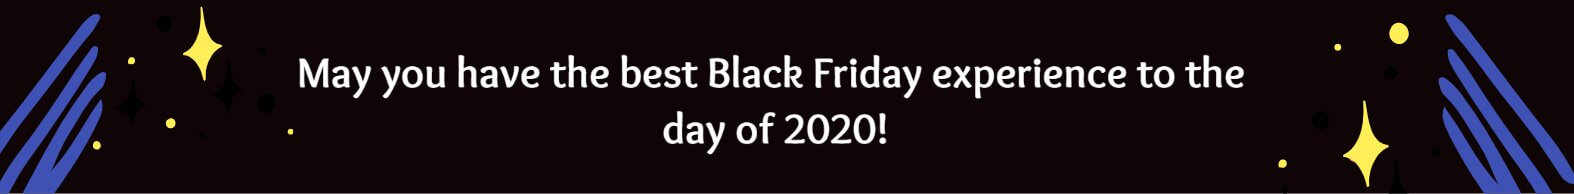 Last minute Black Friday and Cyber Monday ideas